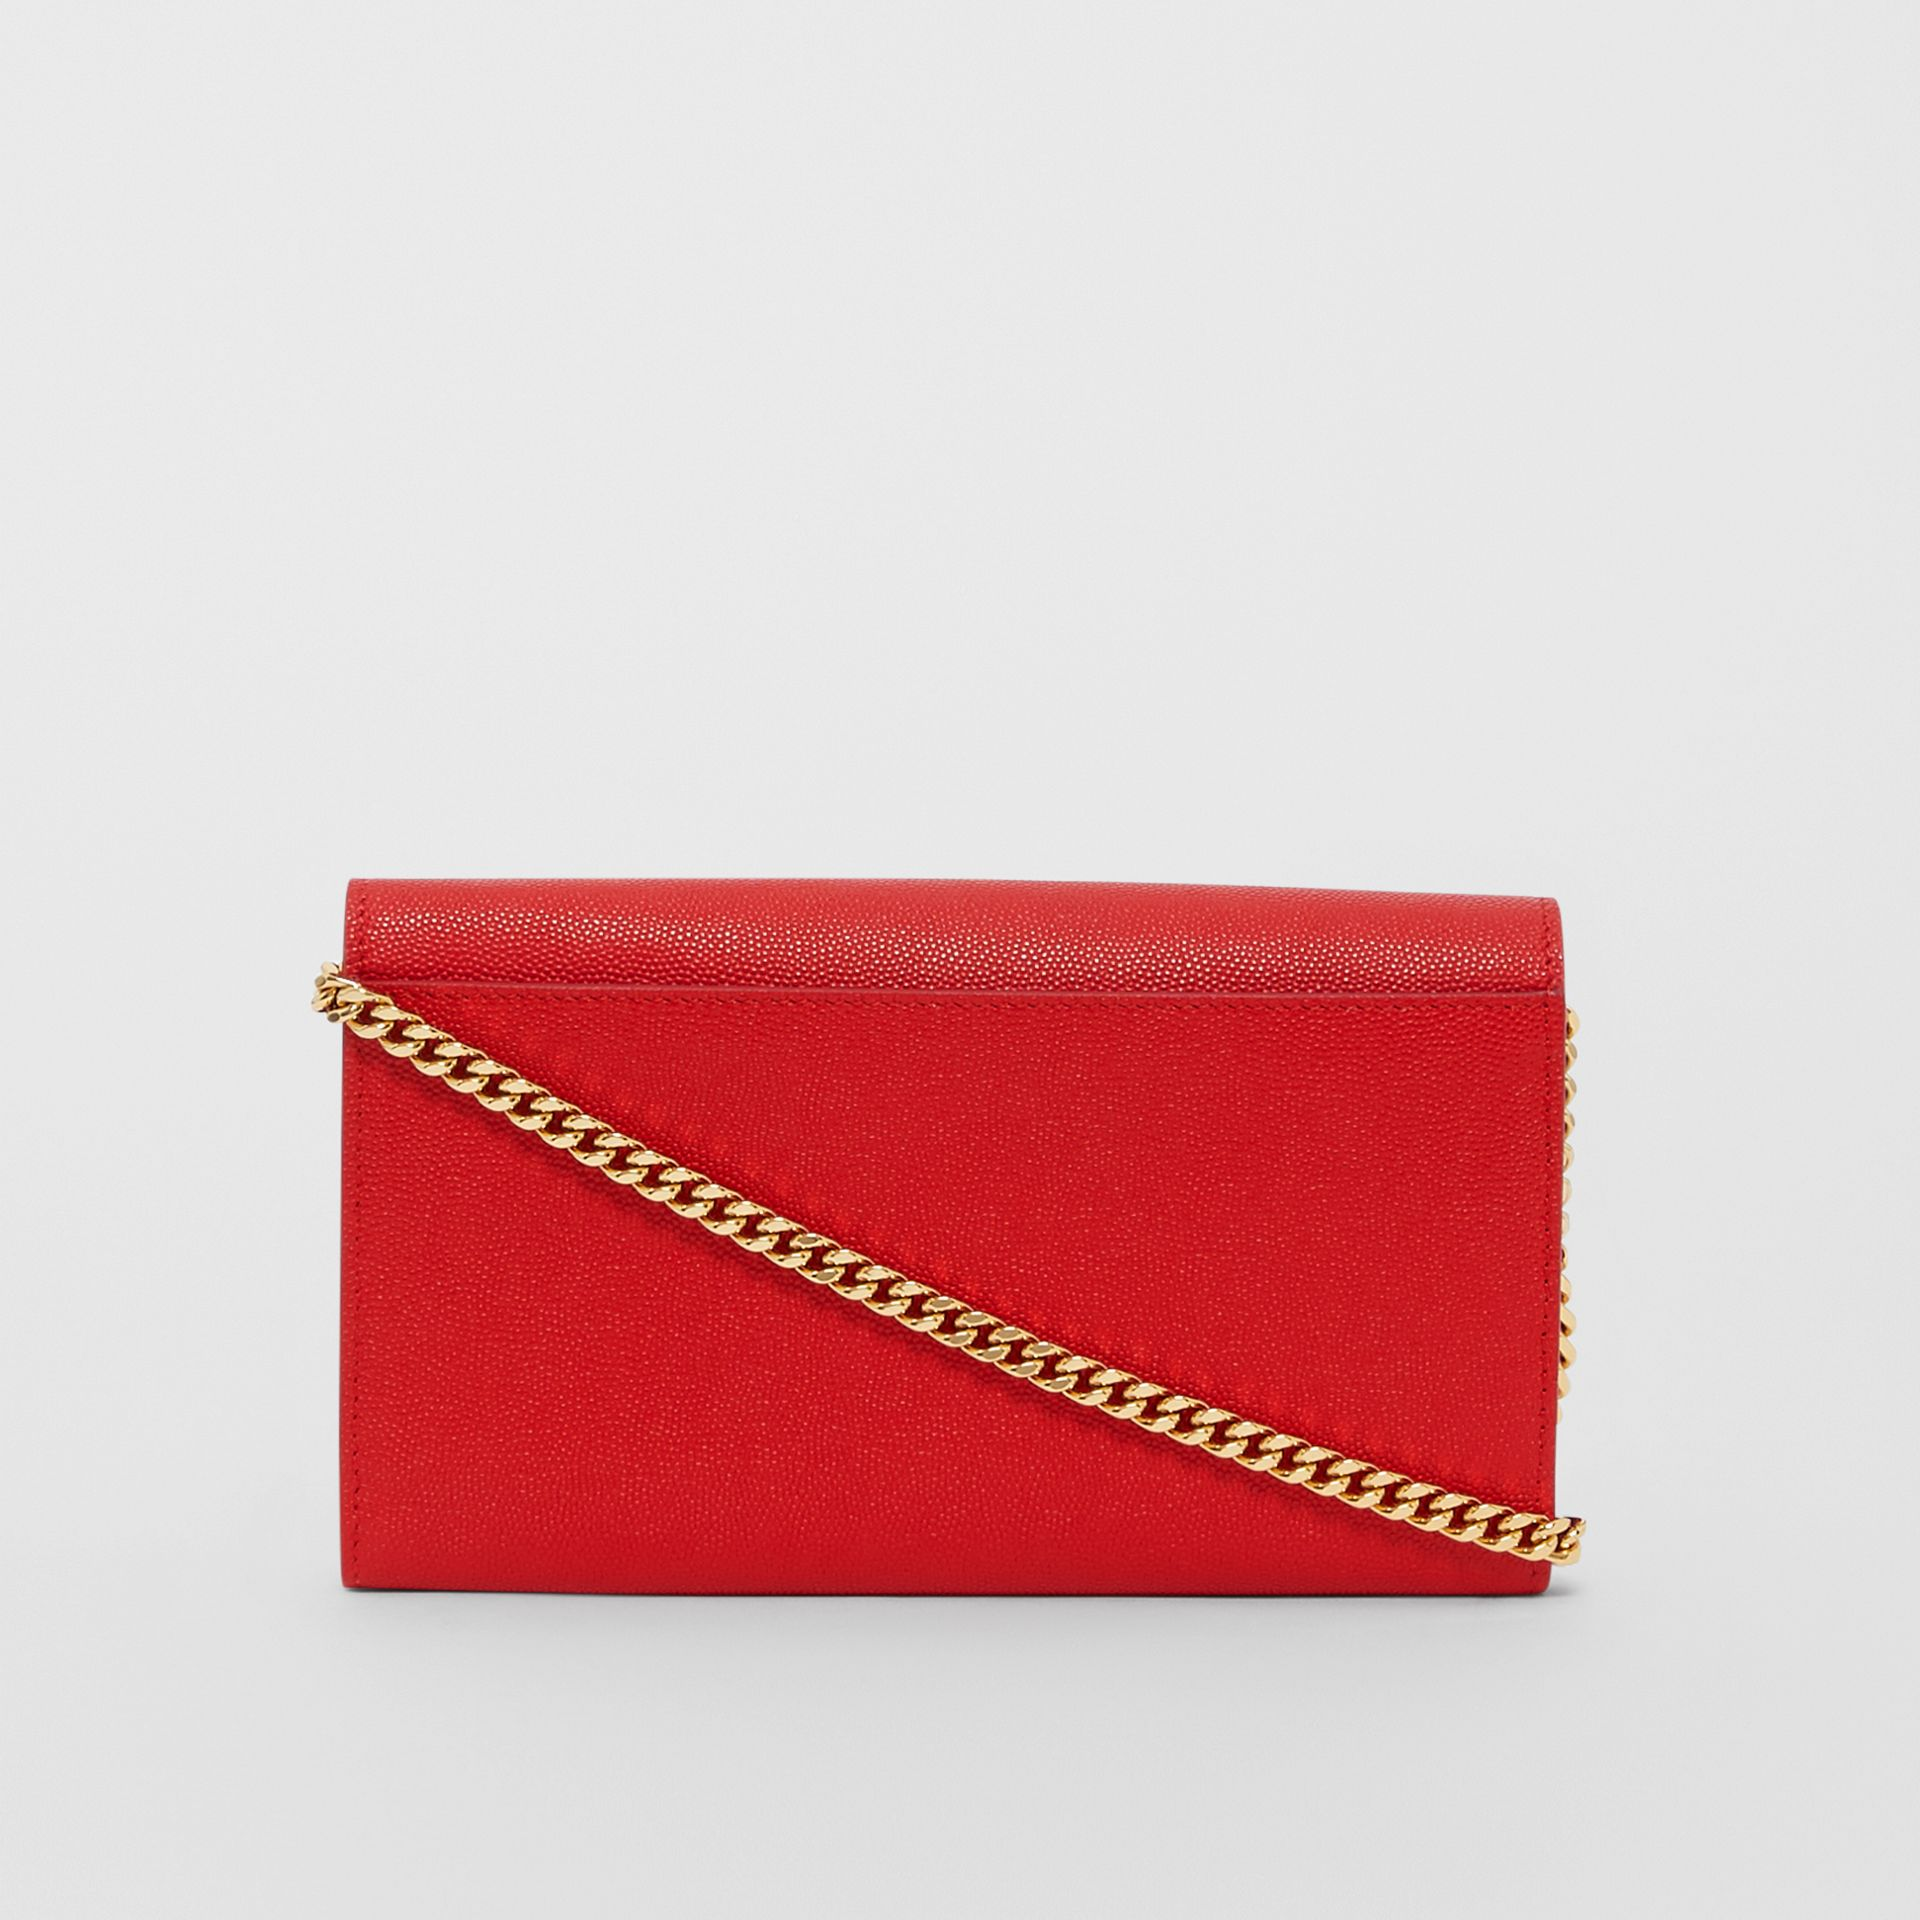 Monogram Motif Leather Wallet with Detachable Strap in Bright Red - Women | Burberry United Kingdom - gallery image 5